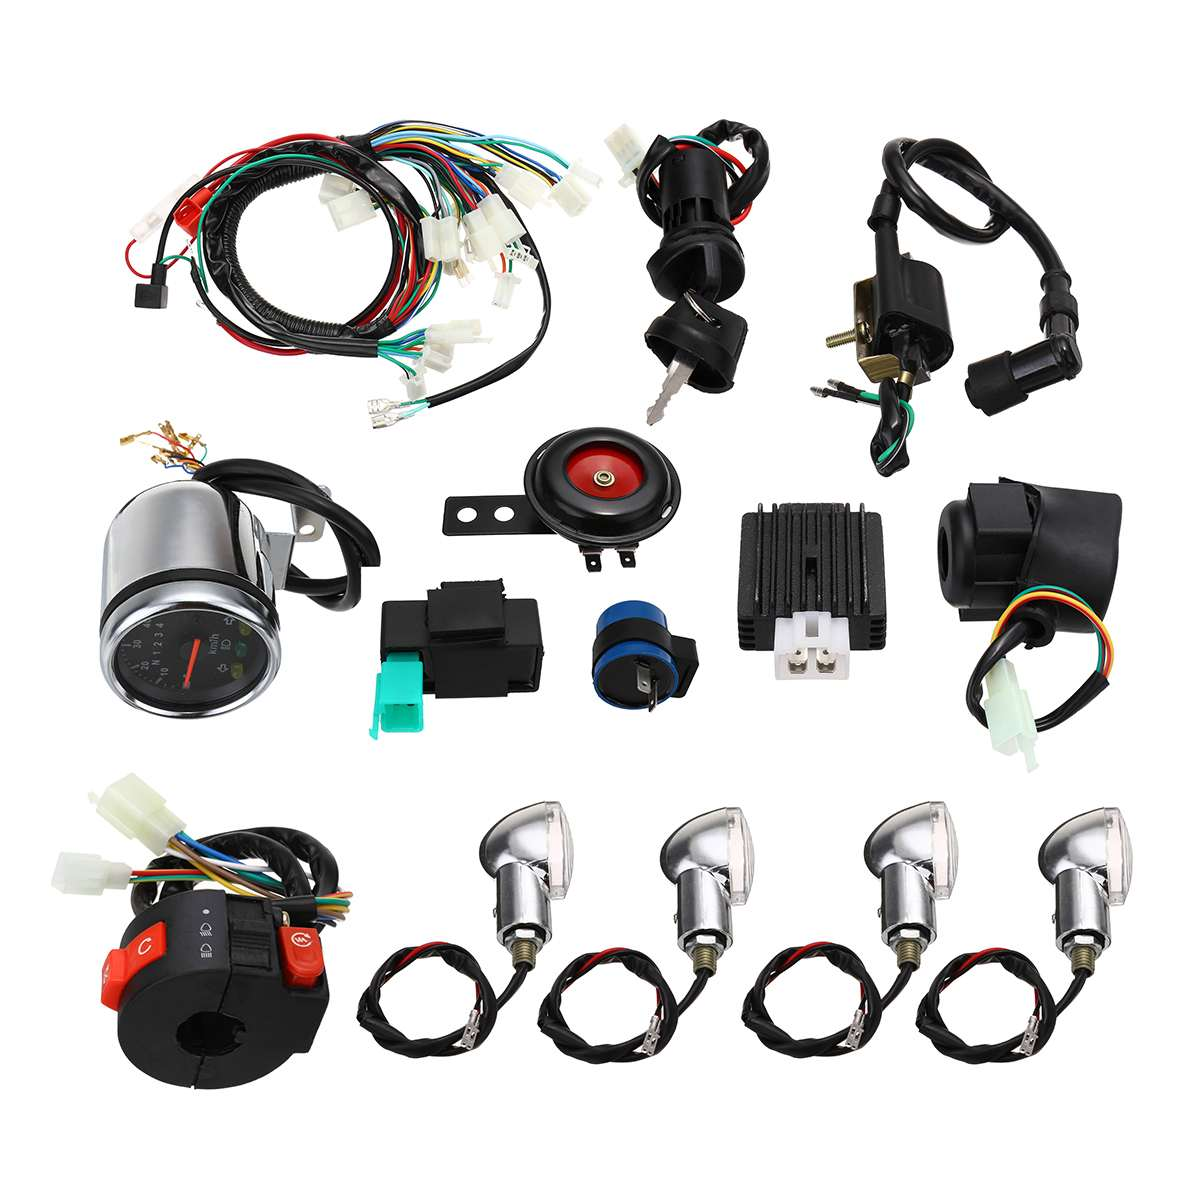 Motorcycle Full Electric CDI Start Engine Wiring Harness Loom Horn Turn Signal Light For 50cc 110cc 125cc Quad Dirt Bike ATVMotorcycle Full Electric CDI Start Engine Wiring Harness Loom Horn Turn Signal Light For 50cc 110cc 125cc Quad Dirt Bike ATV